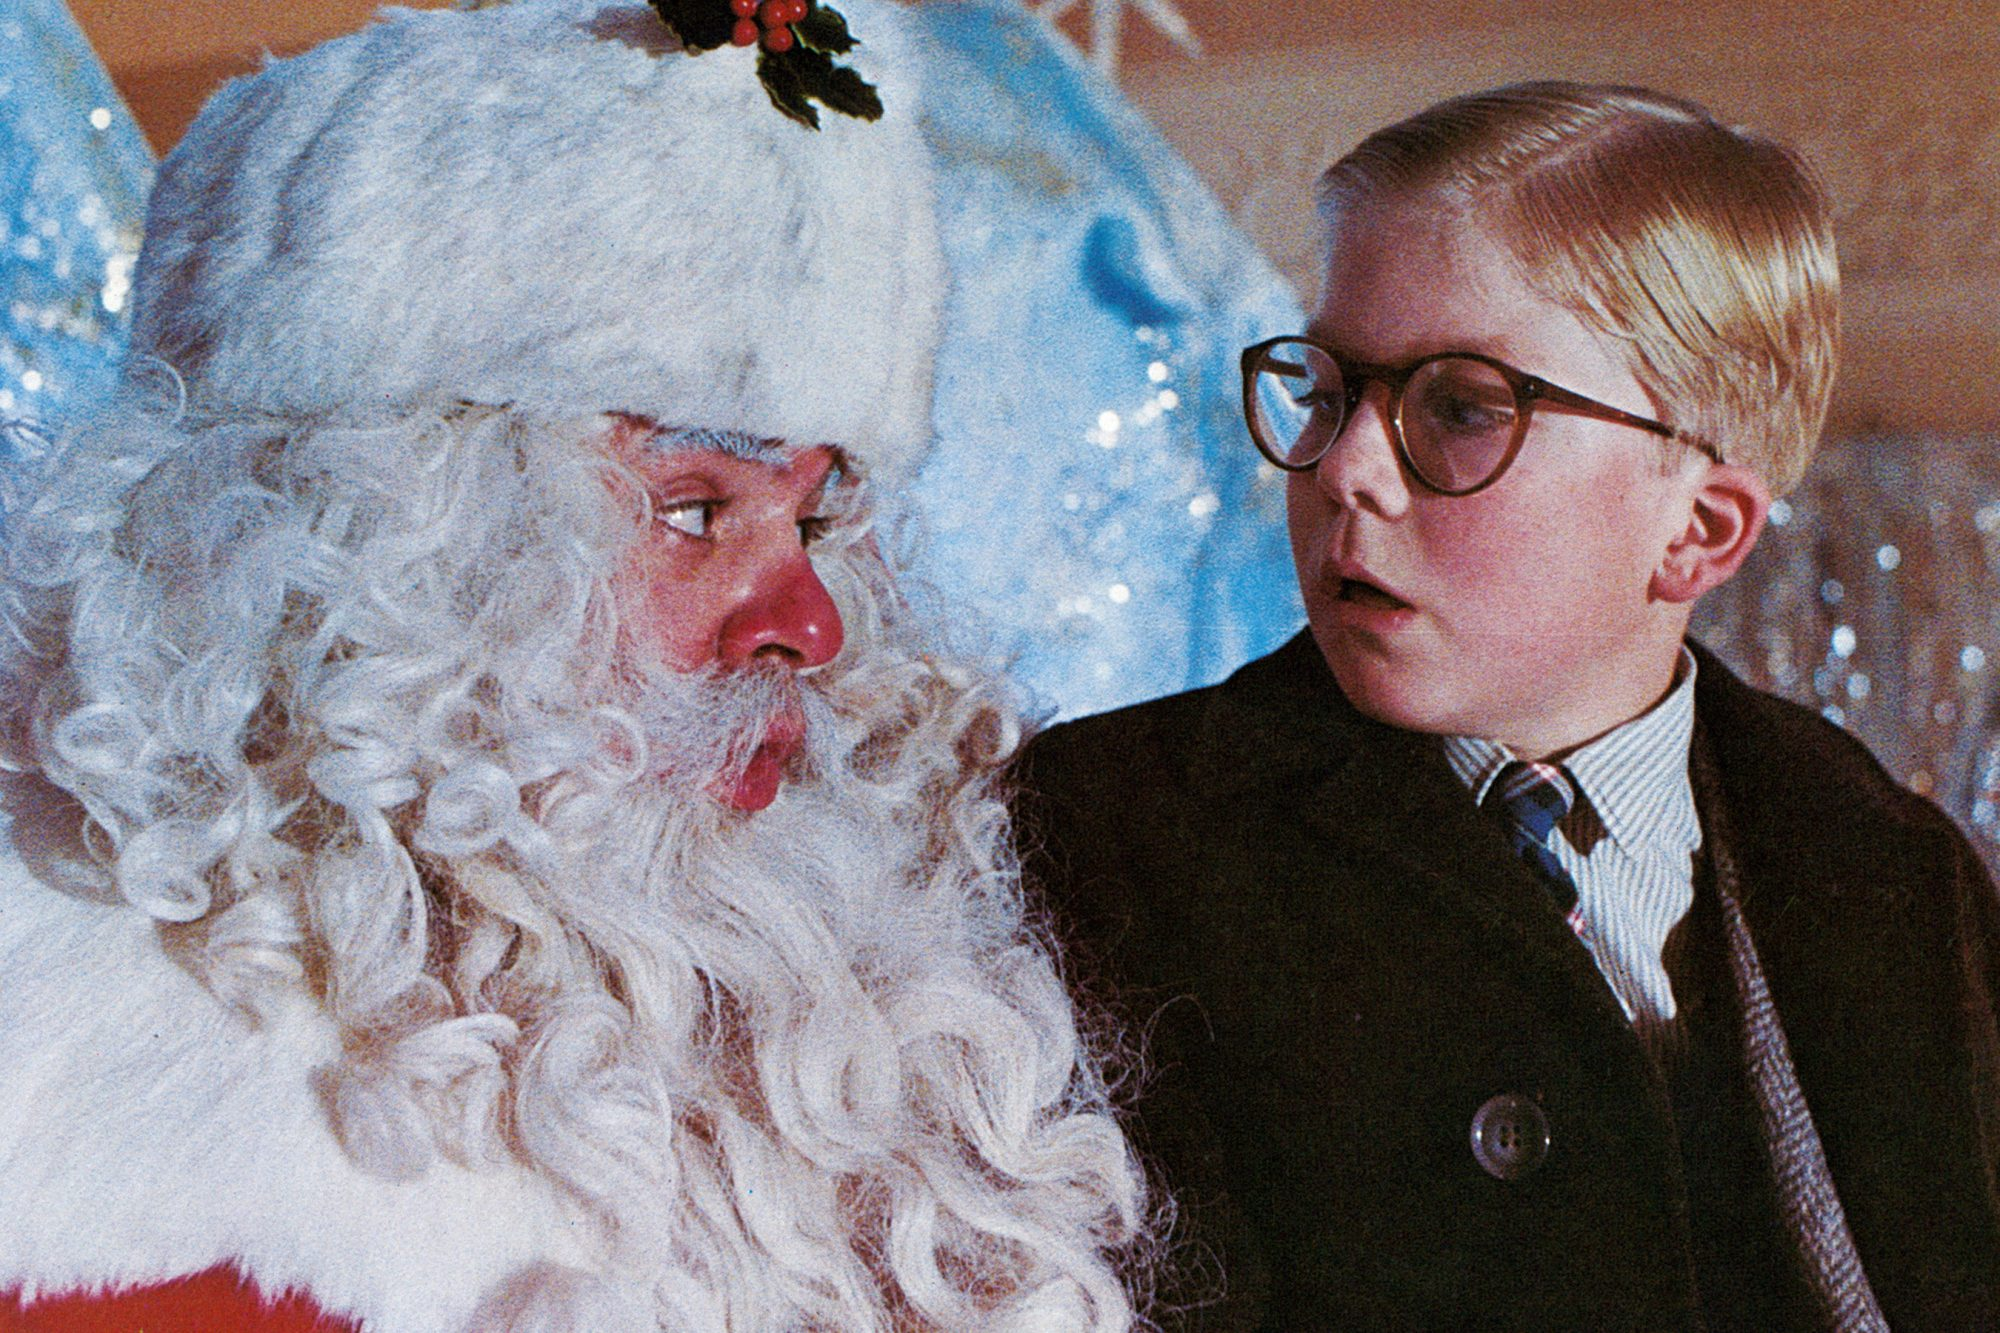 Peter Billingsley In 'A Christmas Story'